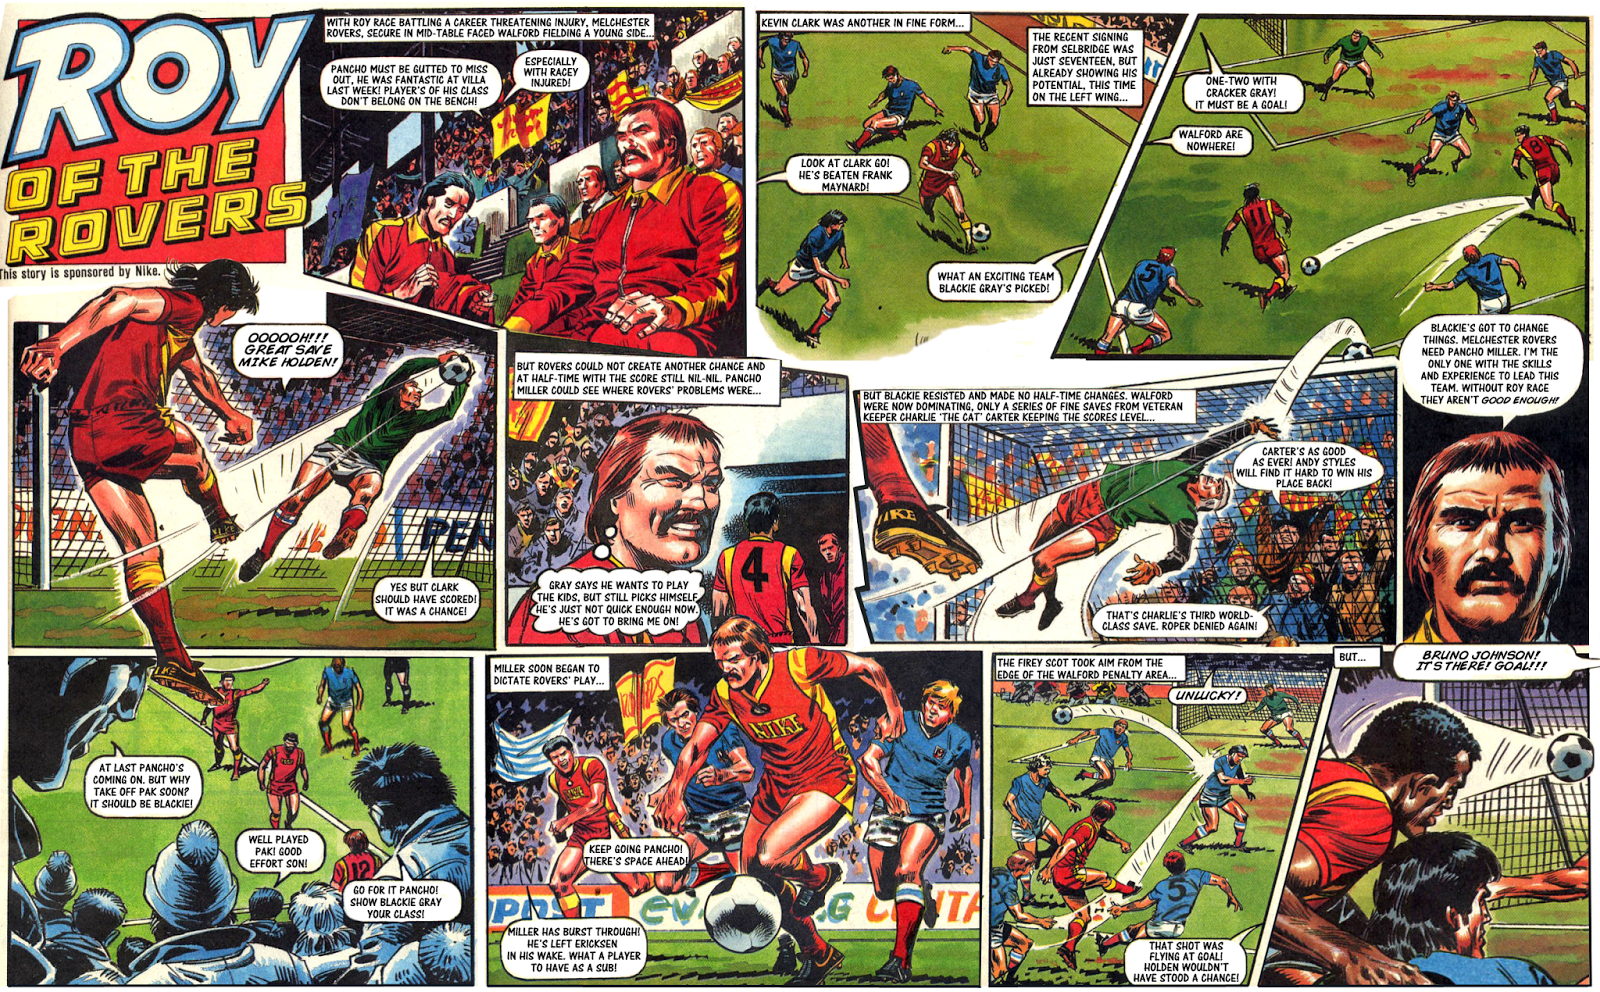 Pancho's Plan - Melchester Rovers vs Walford Rovers 86/87